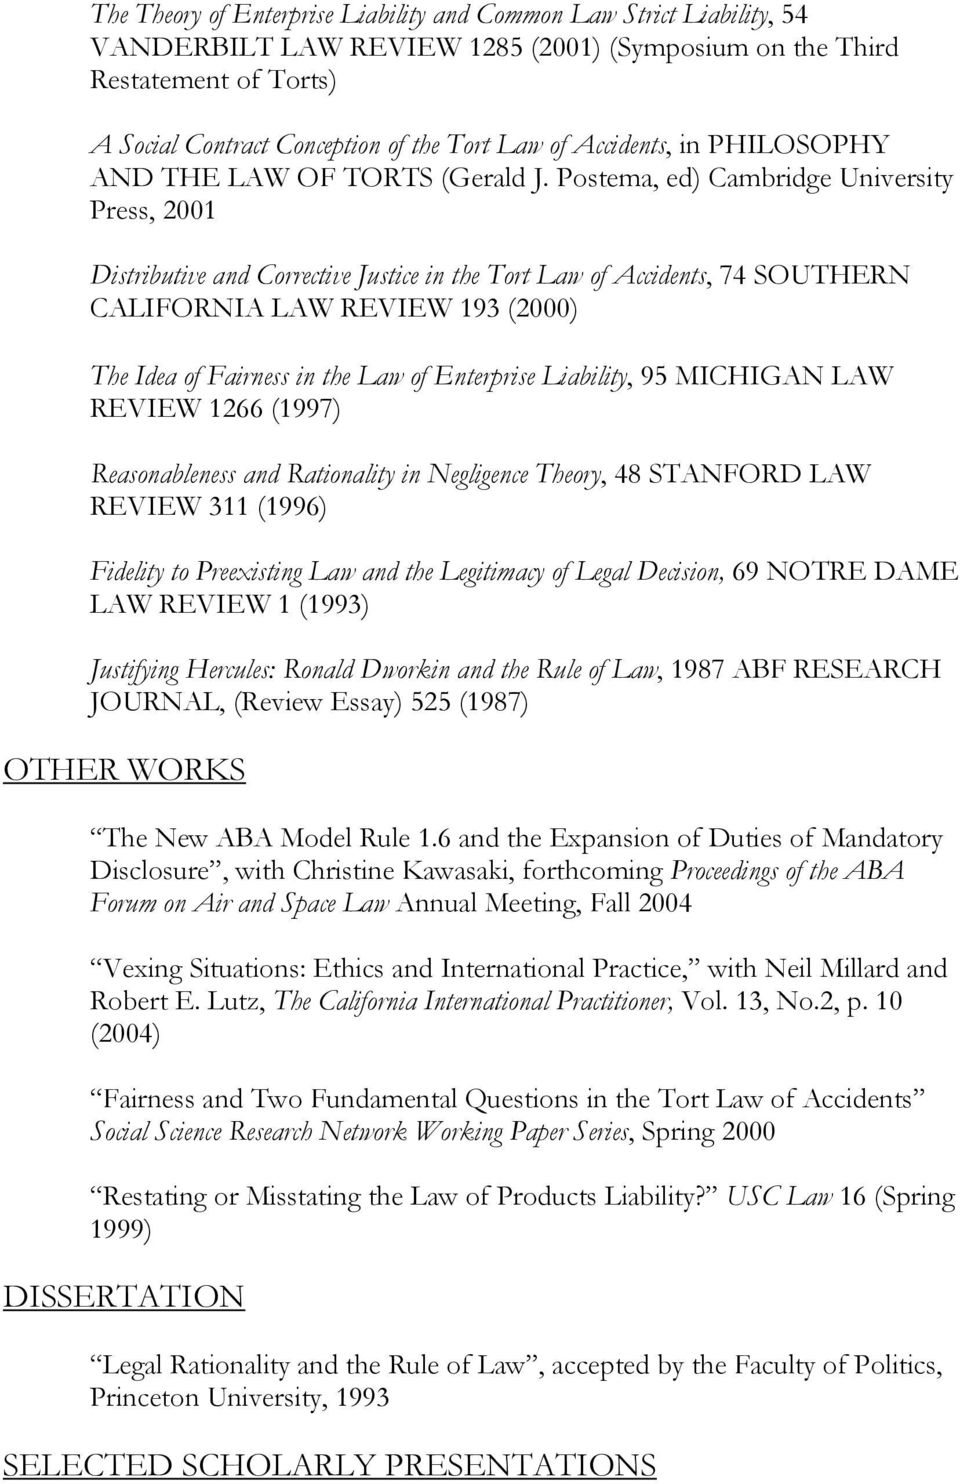 Postema, ed) Cambridge University Press, 2001 Distributive and Corrective Justice in the Tort Law of Accidents, 74 SOUTHERN CALIFORNIA LAW REVIEW 193 (2000) The Idea of Fairness in the Law of